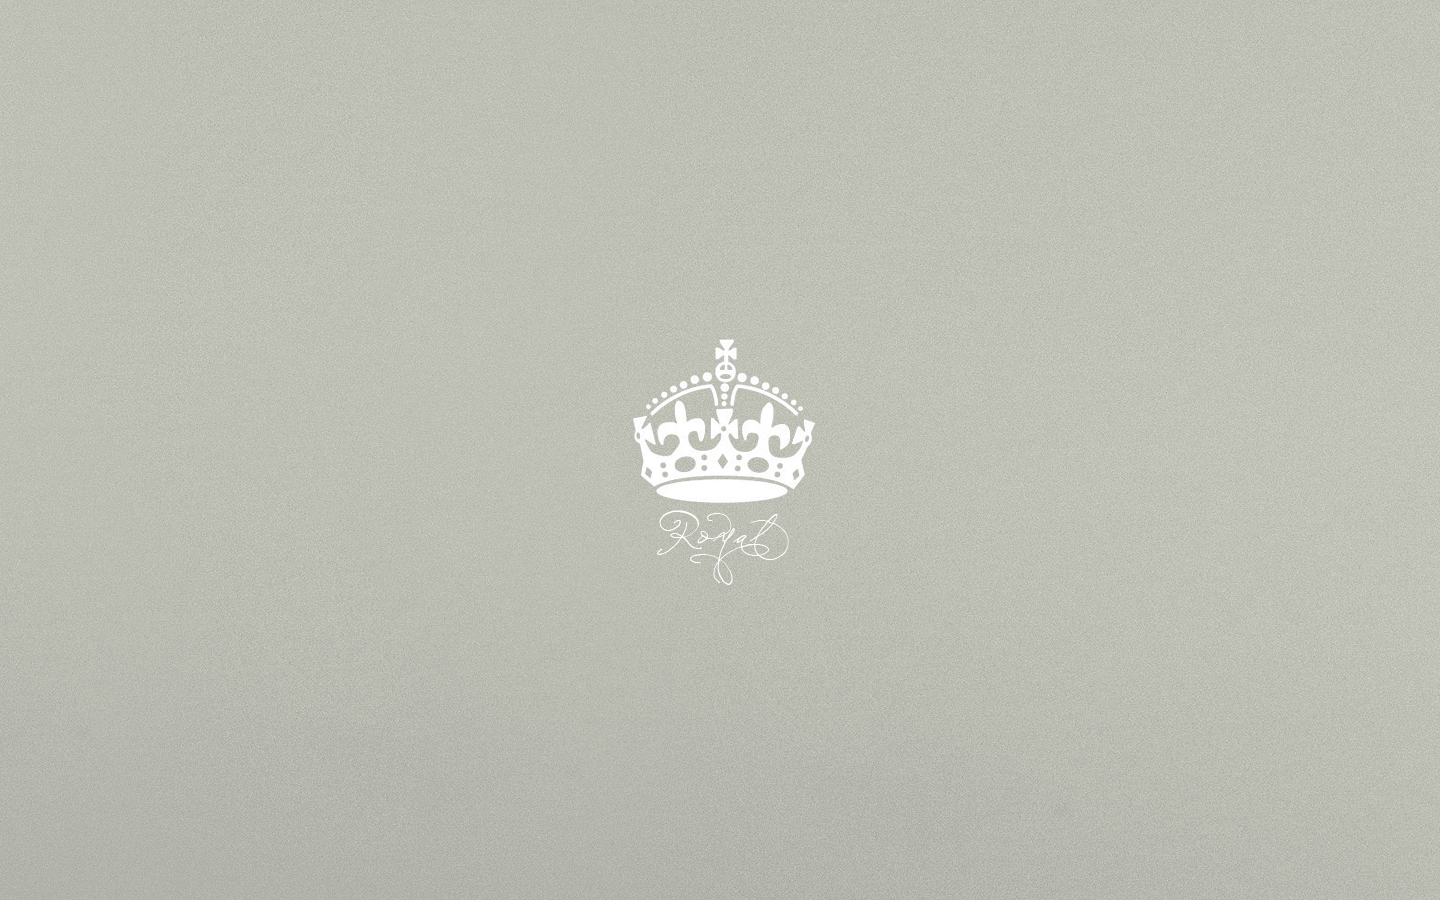 Crown Wallpaper Adorable HDQ Backgrounds of Crown 35 1440x900